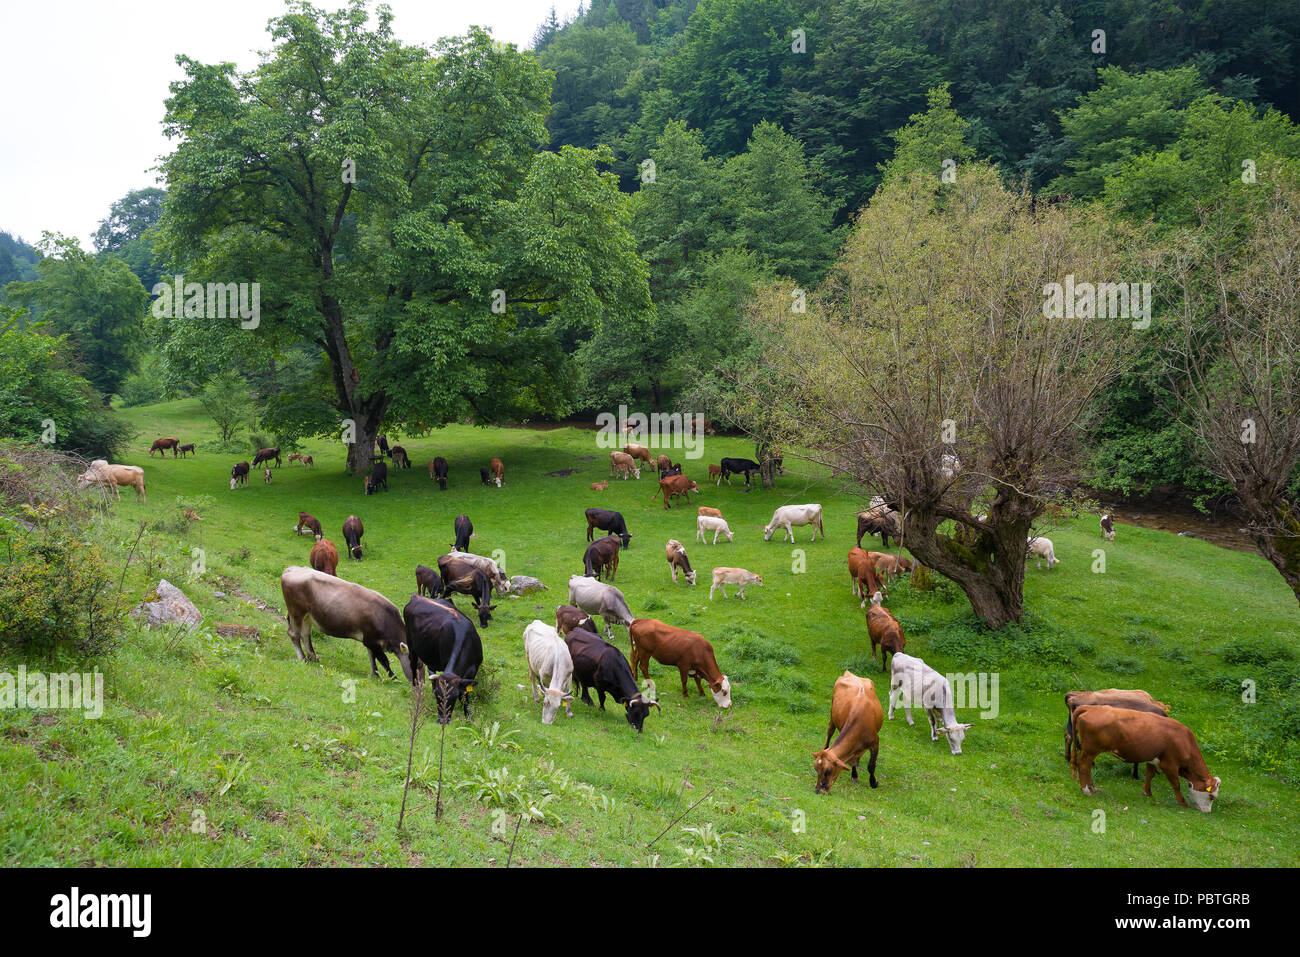 Livestock breeding. Herd of bulls, cows and calves grazing in meadow with fresh grass. Rancho. - Stock Image